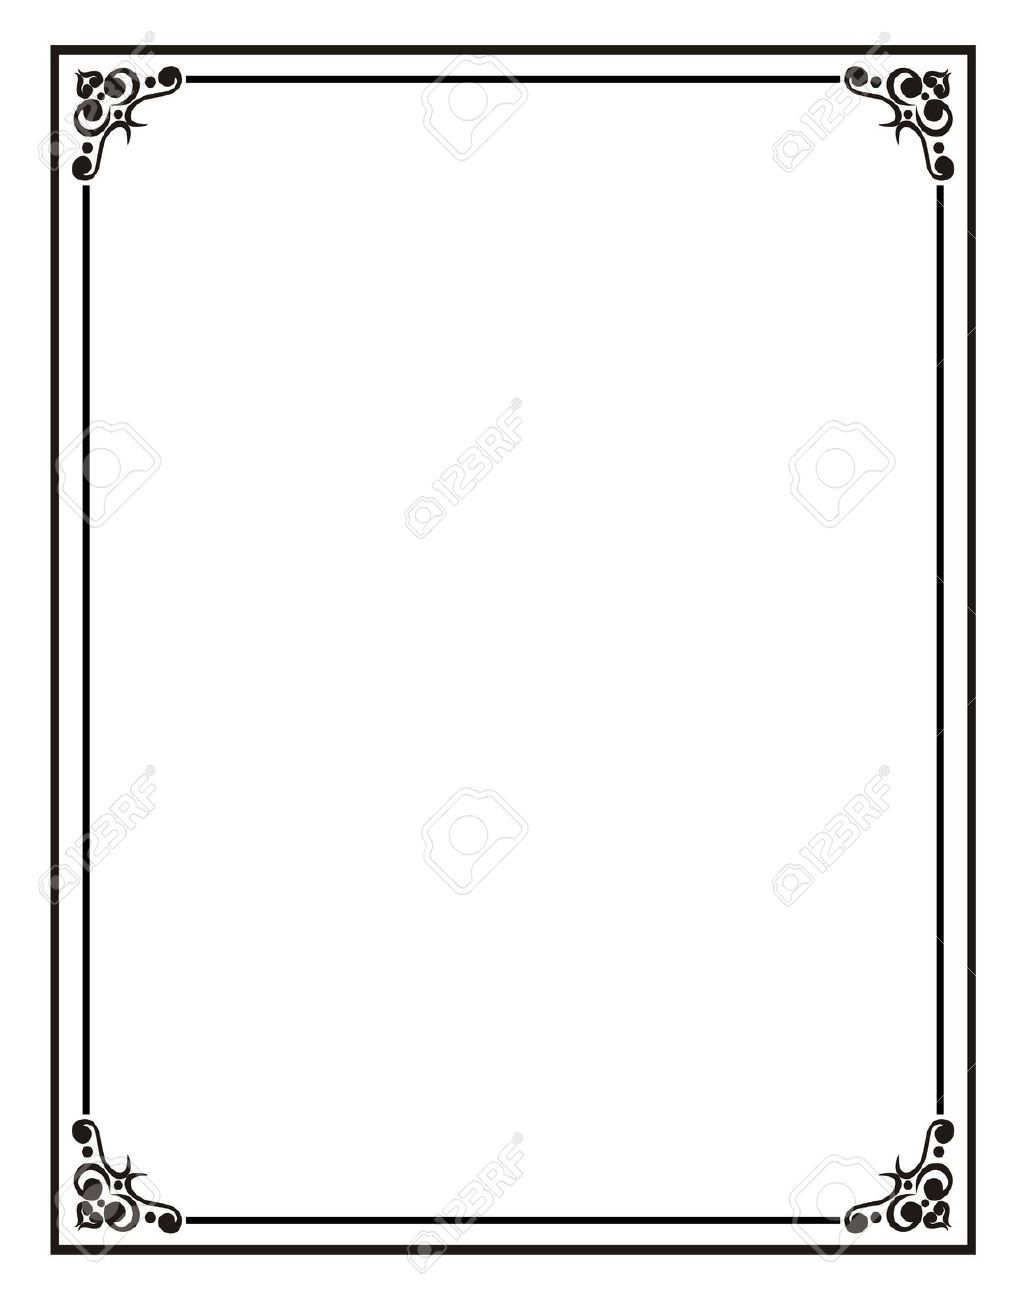 Related image make recipe cards pinterest journal clip art home officecertificate border stock photos pictures royalty free with regard to word document frames borders regarding comfy word document frames borders yadclub Images